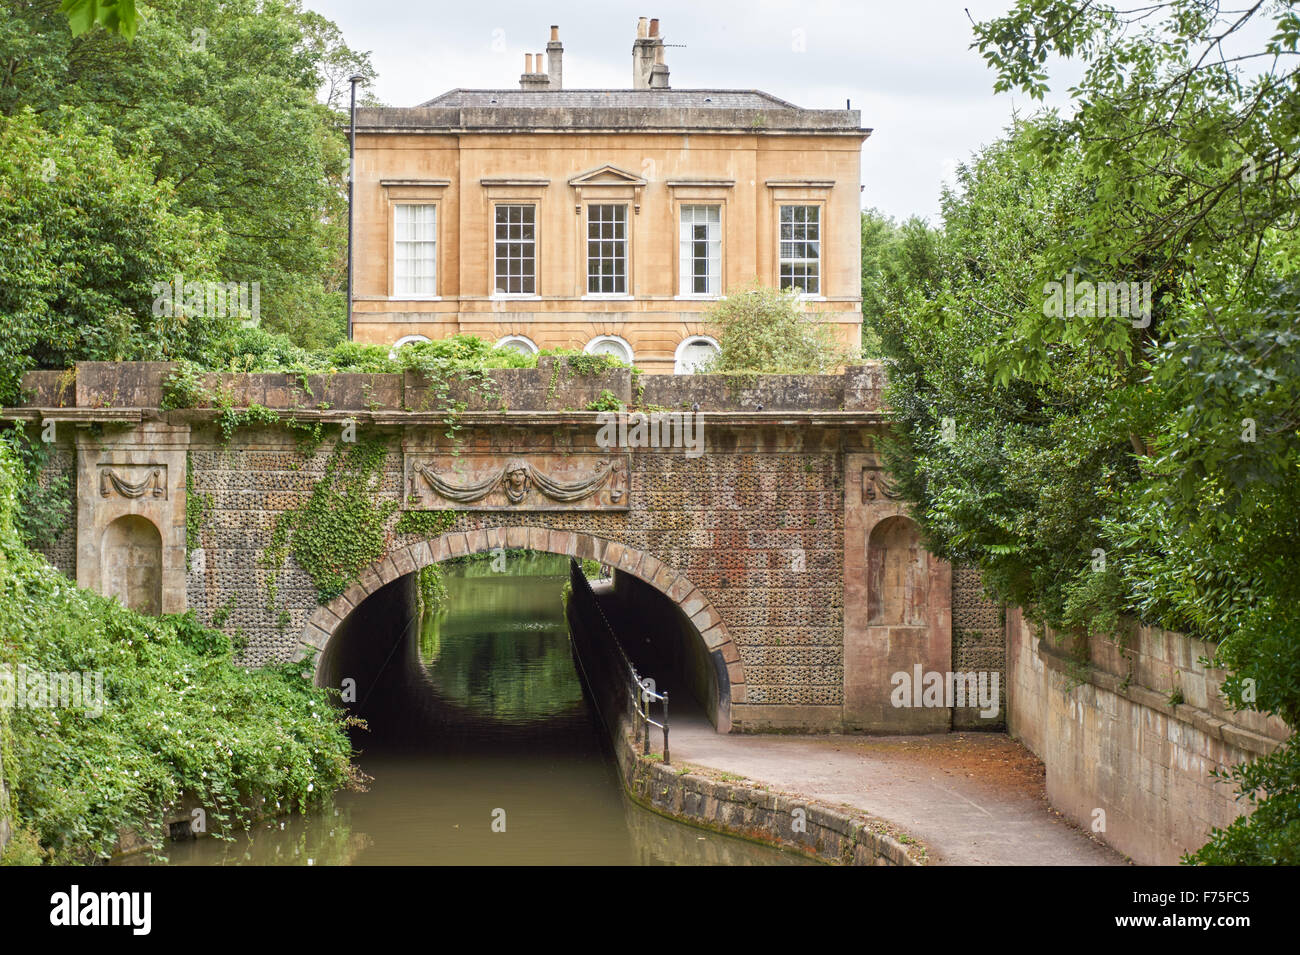 Cleveland House sur le Kennet and Avon Canal à Bath, Somerset, Angleterre Royaume-Uni UK Photo Stock